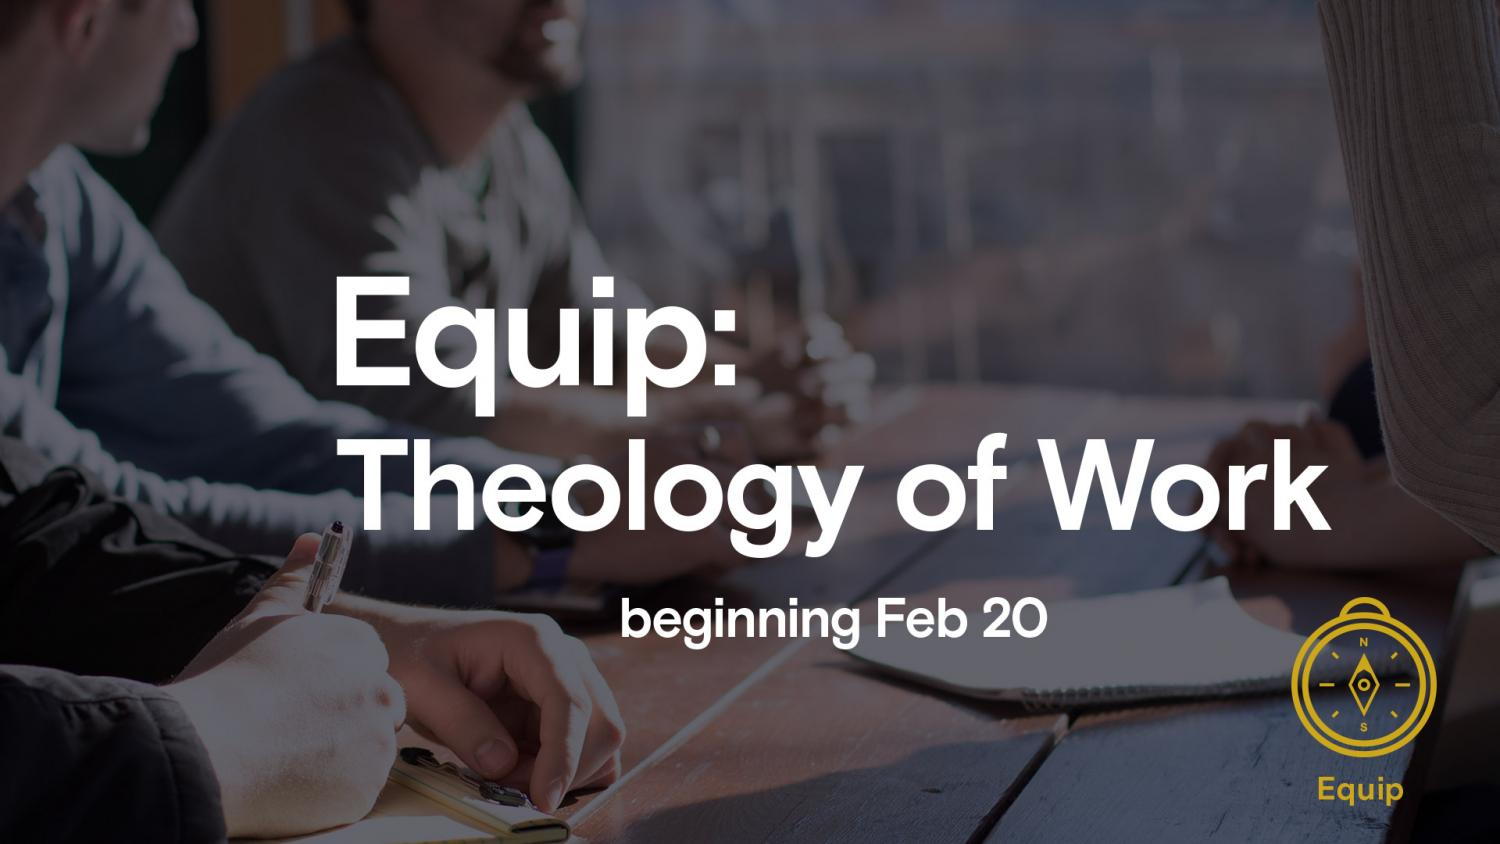 Equip: Theology of Work